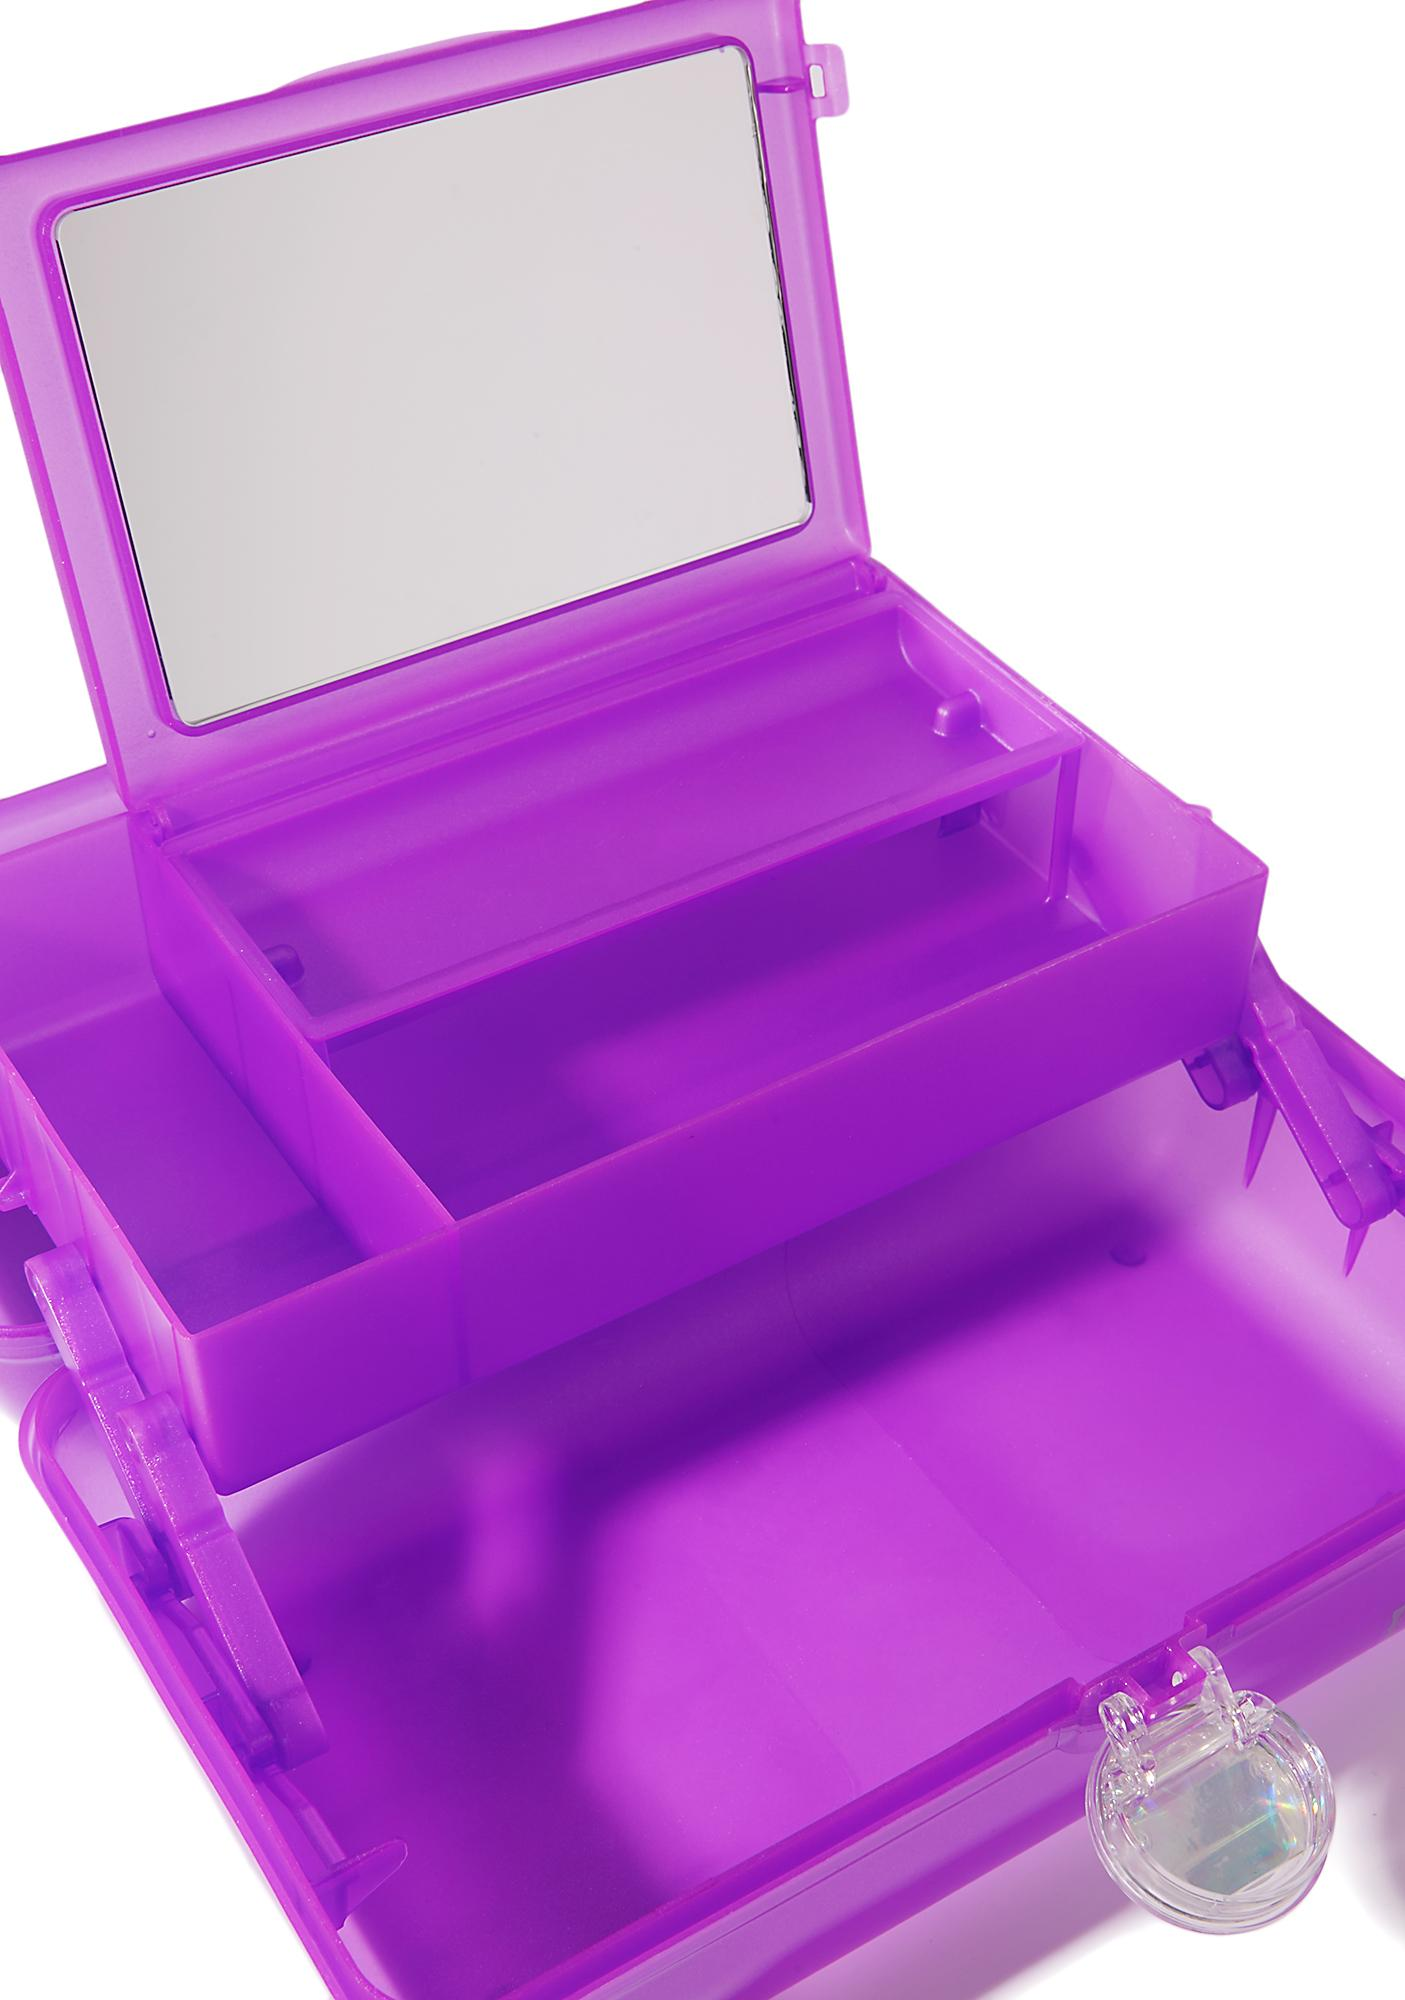 Caboodles On The Go Girl Makeup Case